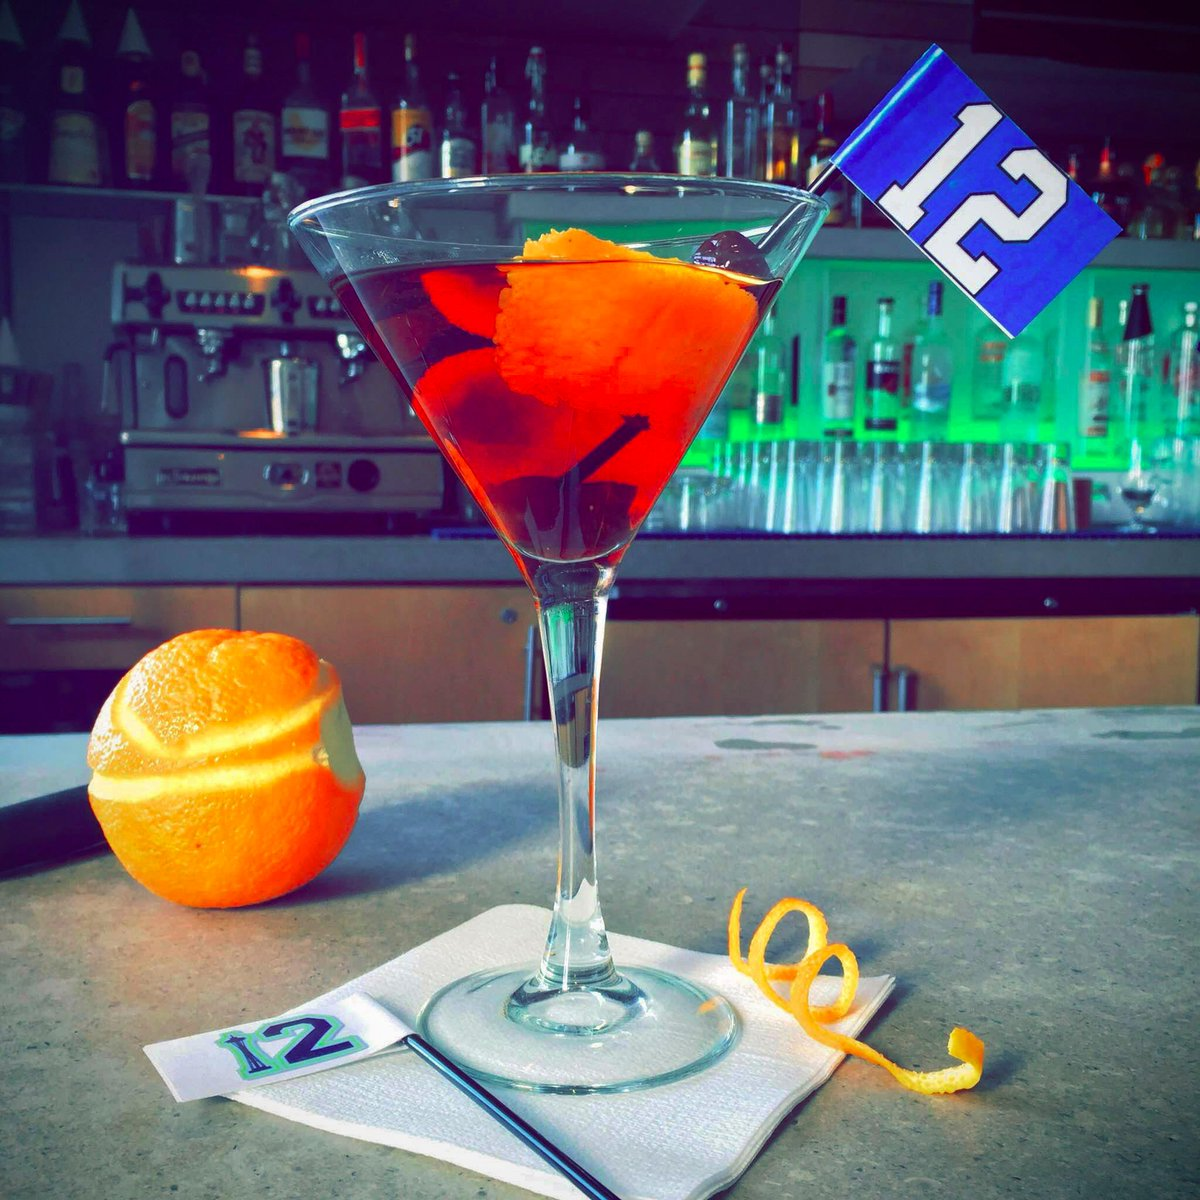 Too early to talk cocktails? This 12th MANhattan @ARTRestaurant looks so dang cute, right? #GoHawks http://t.co/RK52jyfD8b